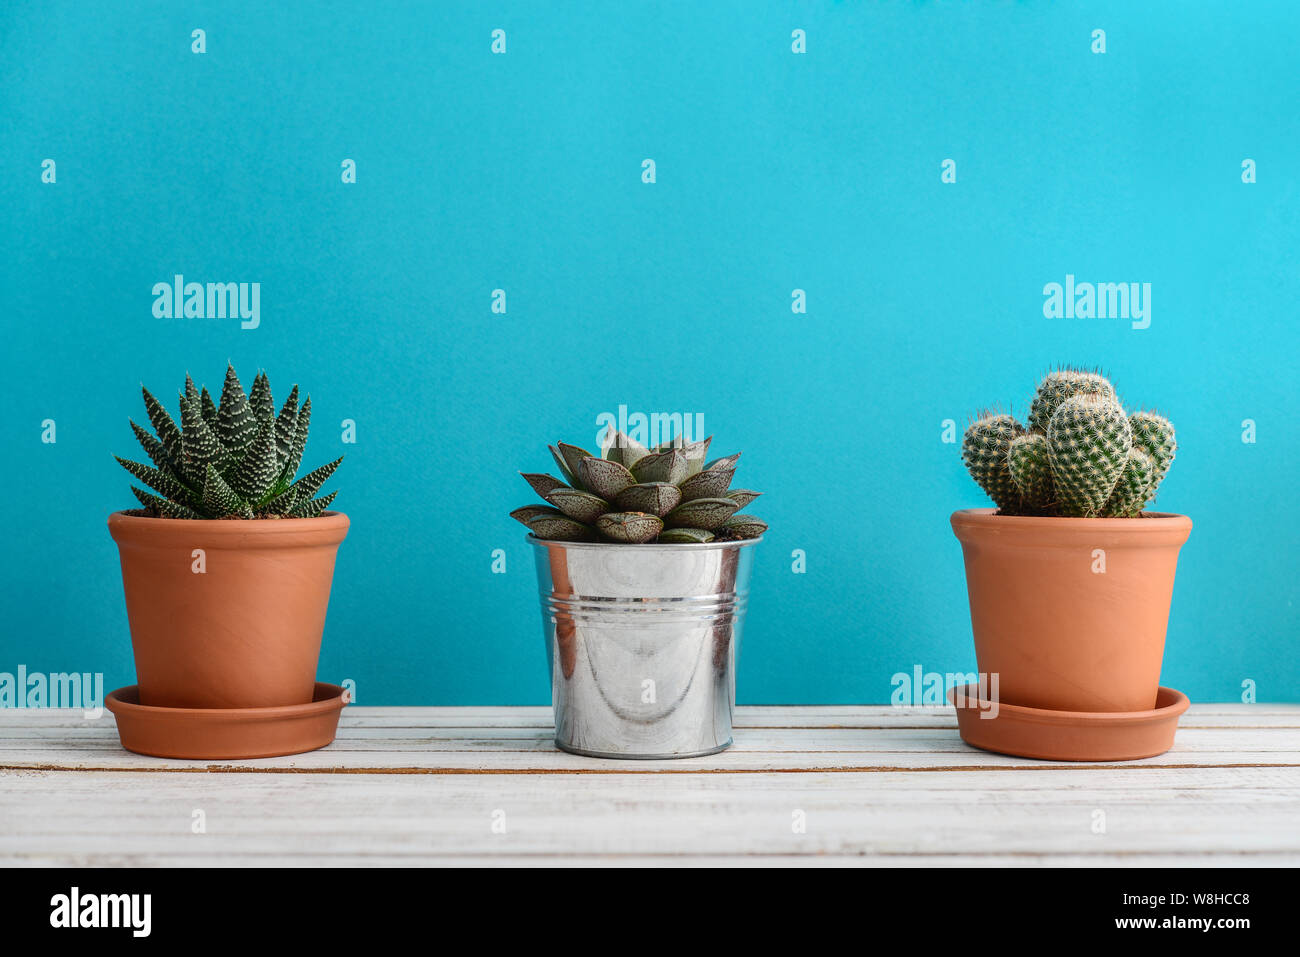 Collection Of Various Cactus And Succulent Plants In Different Pots Potted Cactus House Plants On Blue Background Stock Photo Alamy